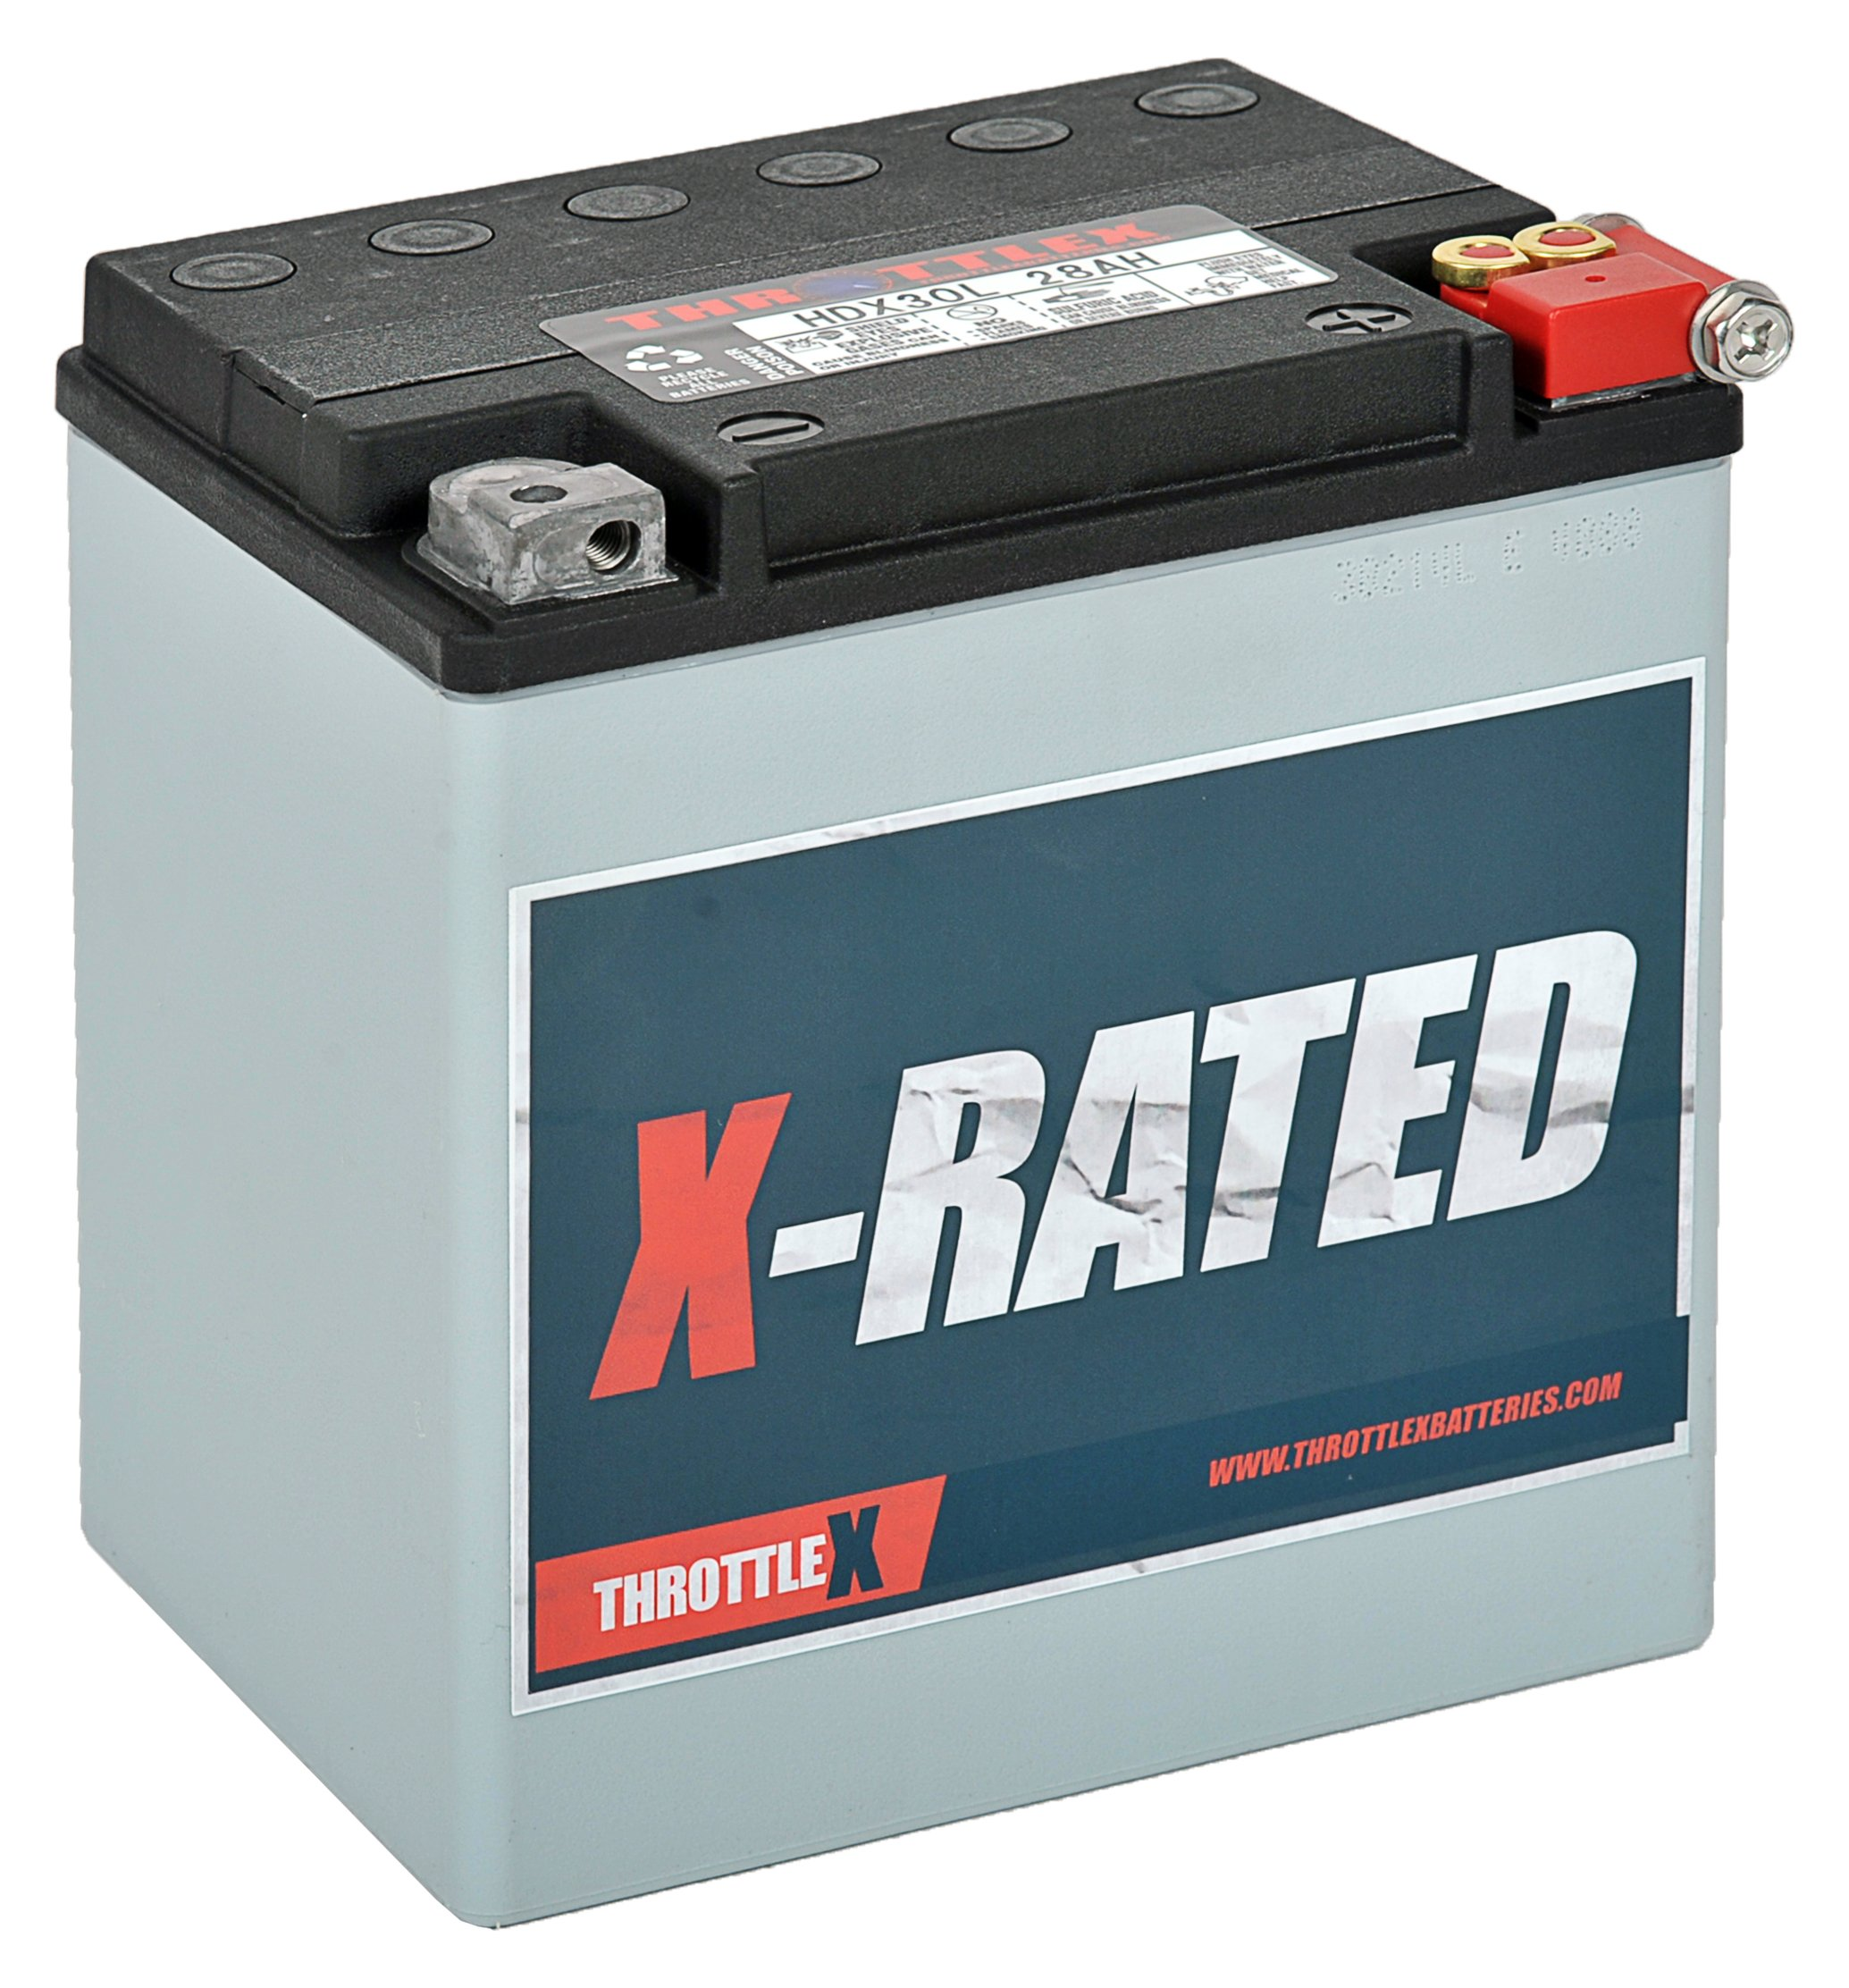 THROTTLEX HDX30L - MADE IN AMERICA - Harley Davidson Replacement Motorcycle Battery by THROTTLEX